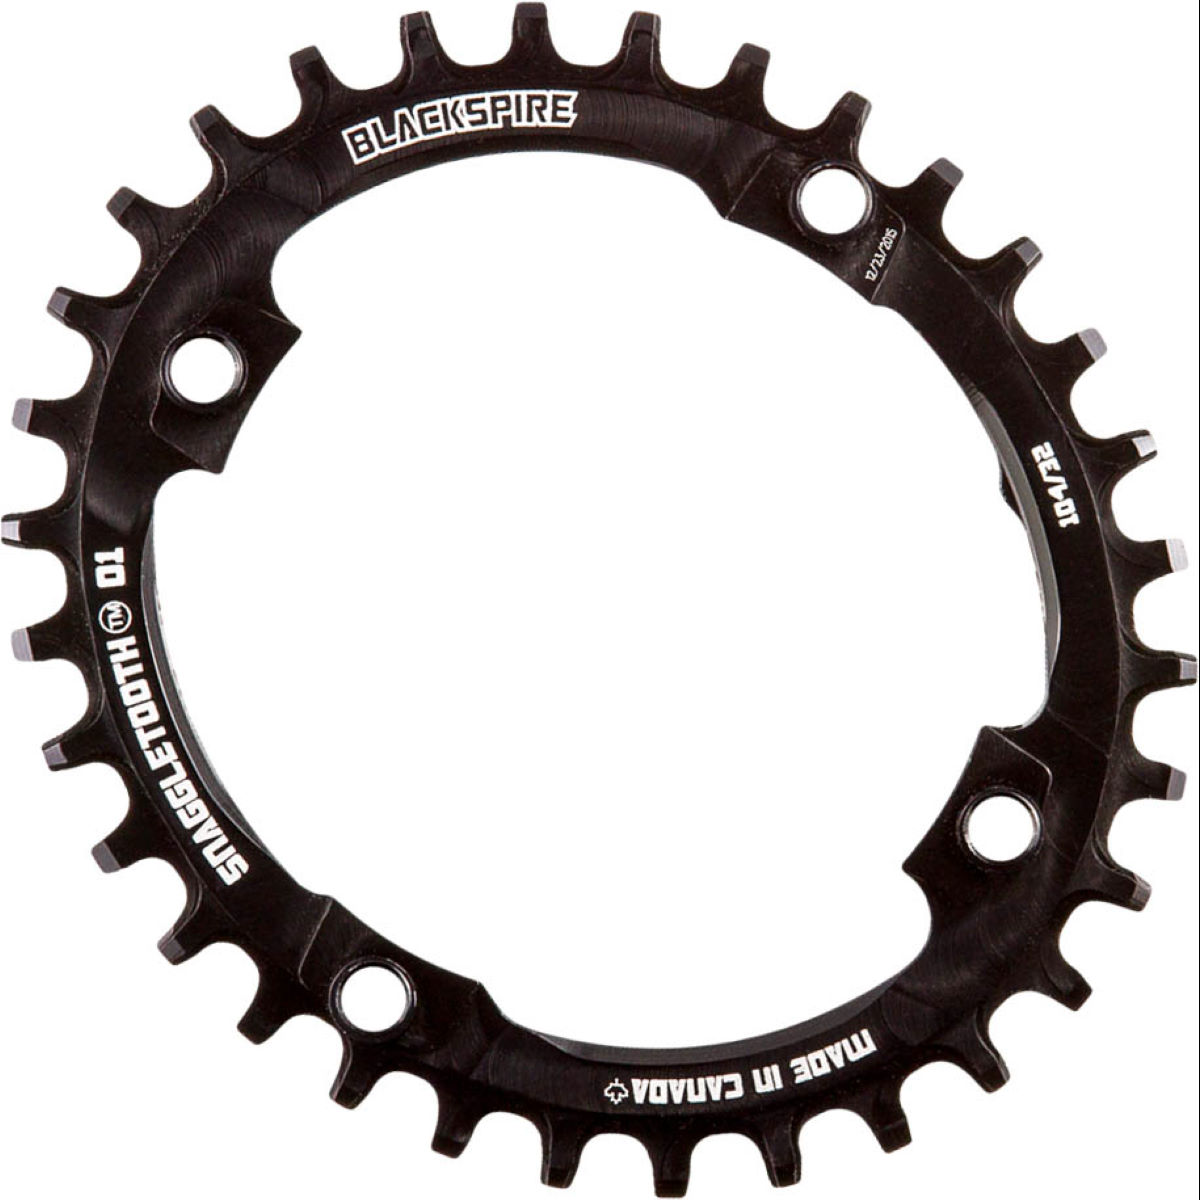 Blackspire Blackspire Snaggletooth Narrow Wide Oval Chainring   Chain Rings